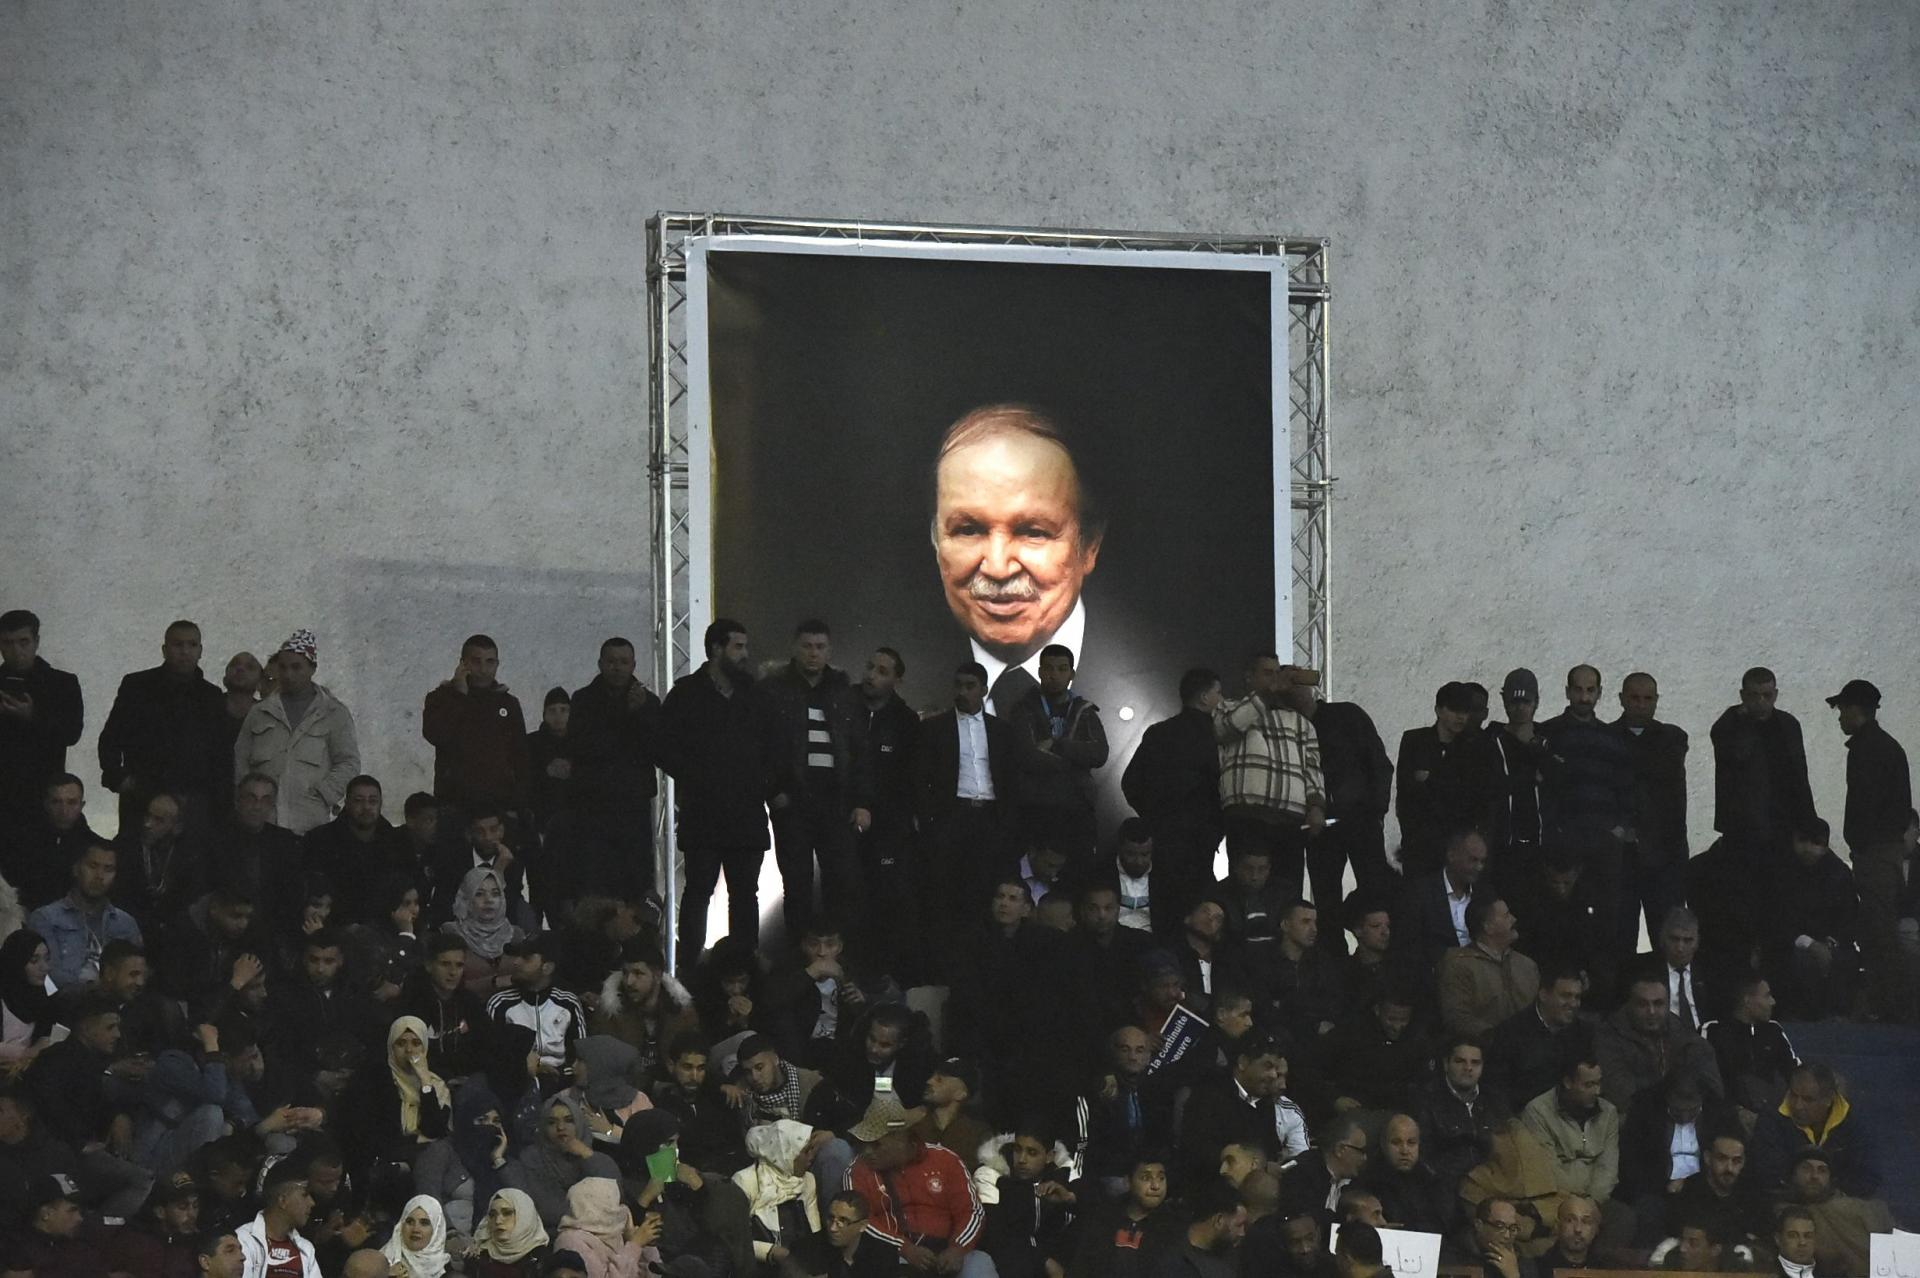 Supporters of Algferia's National Liberation Front (FLN) party, gather at La Coupole arena in the capital Algiers on February 9, 2019, to call upon the current President Abdelaziz Bouteflika (poster) to run for a fifth term in office.